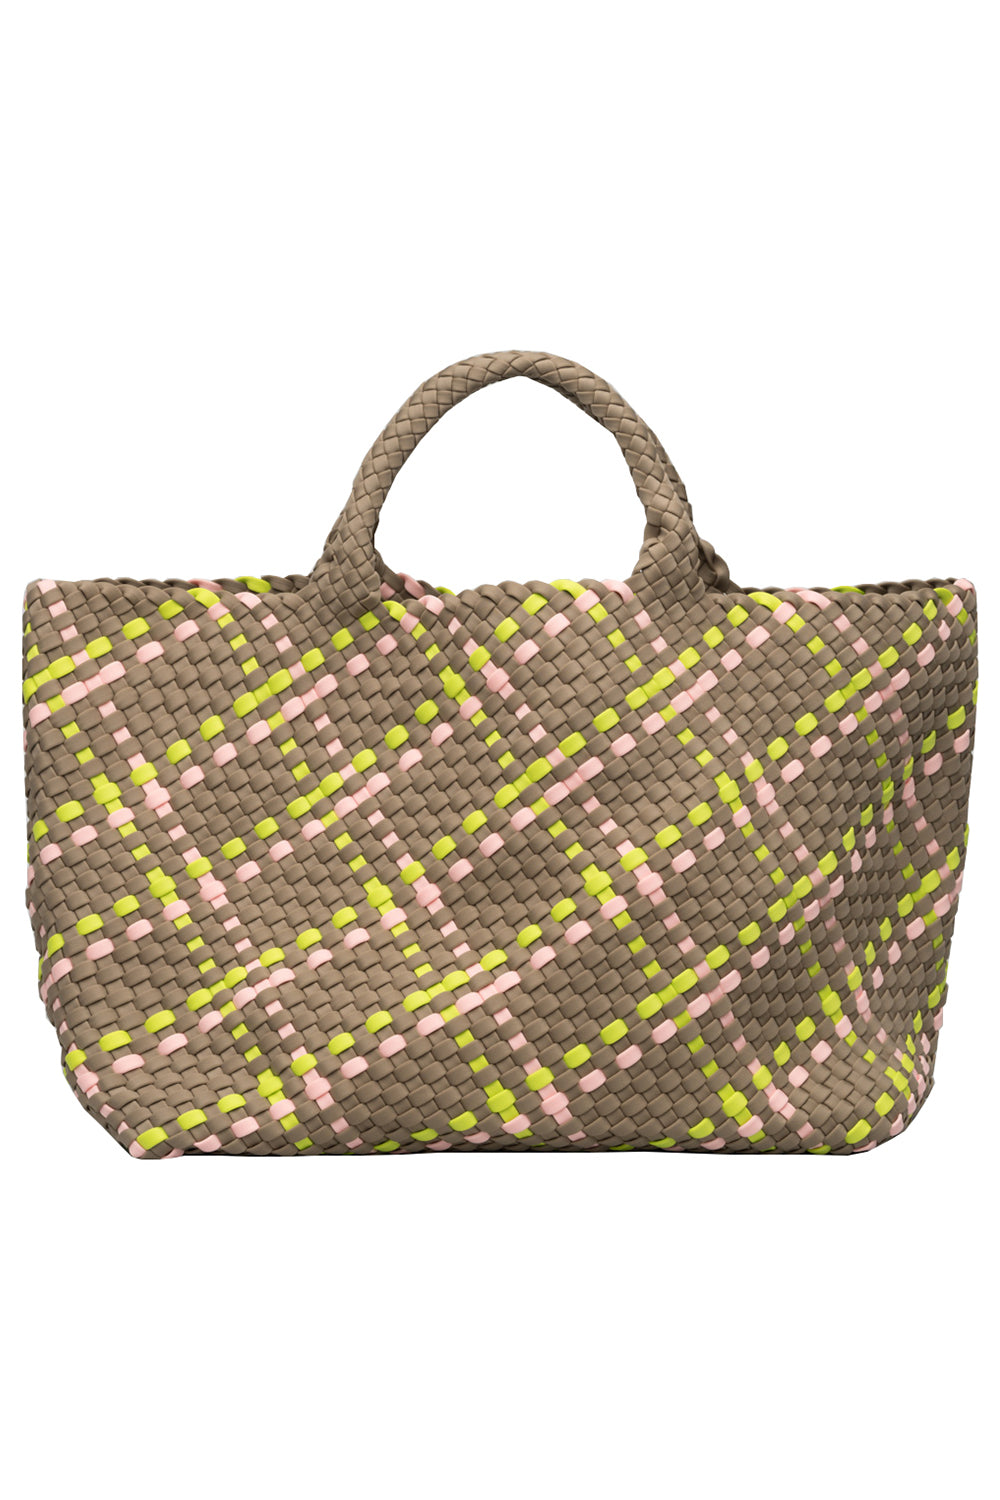 St Barths Large Tote Bag in Taupe, Blush & Lime